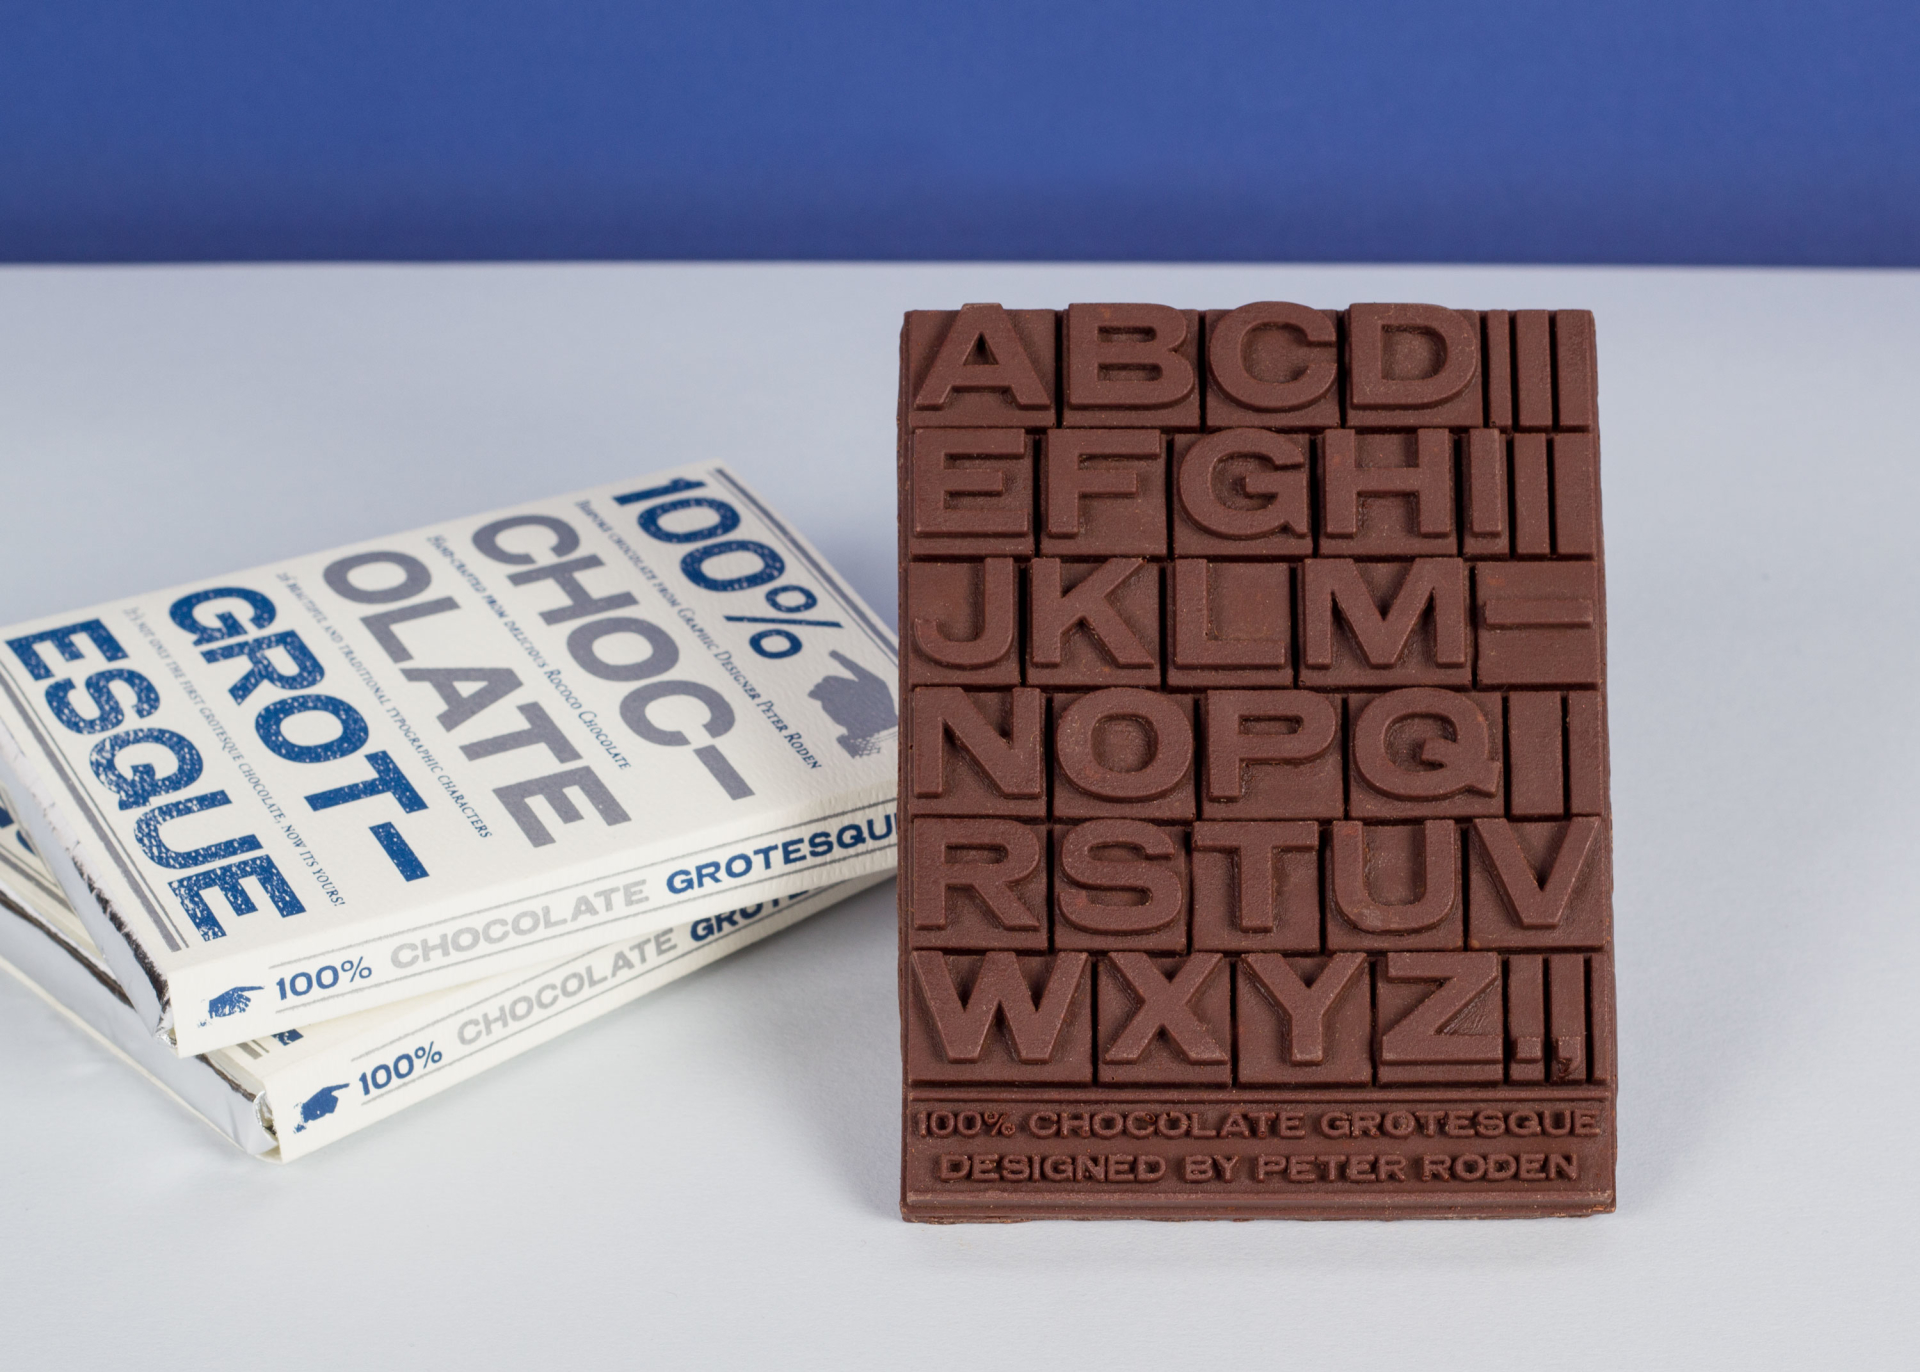 Peter Roden Design 100% Chocolate Grotesque